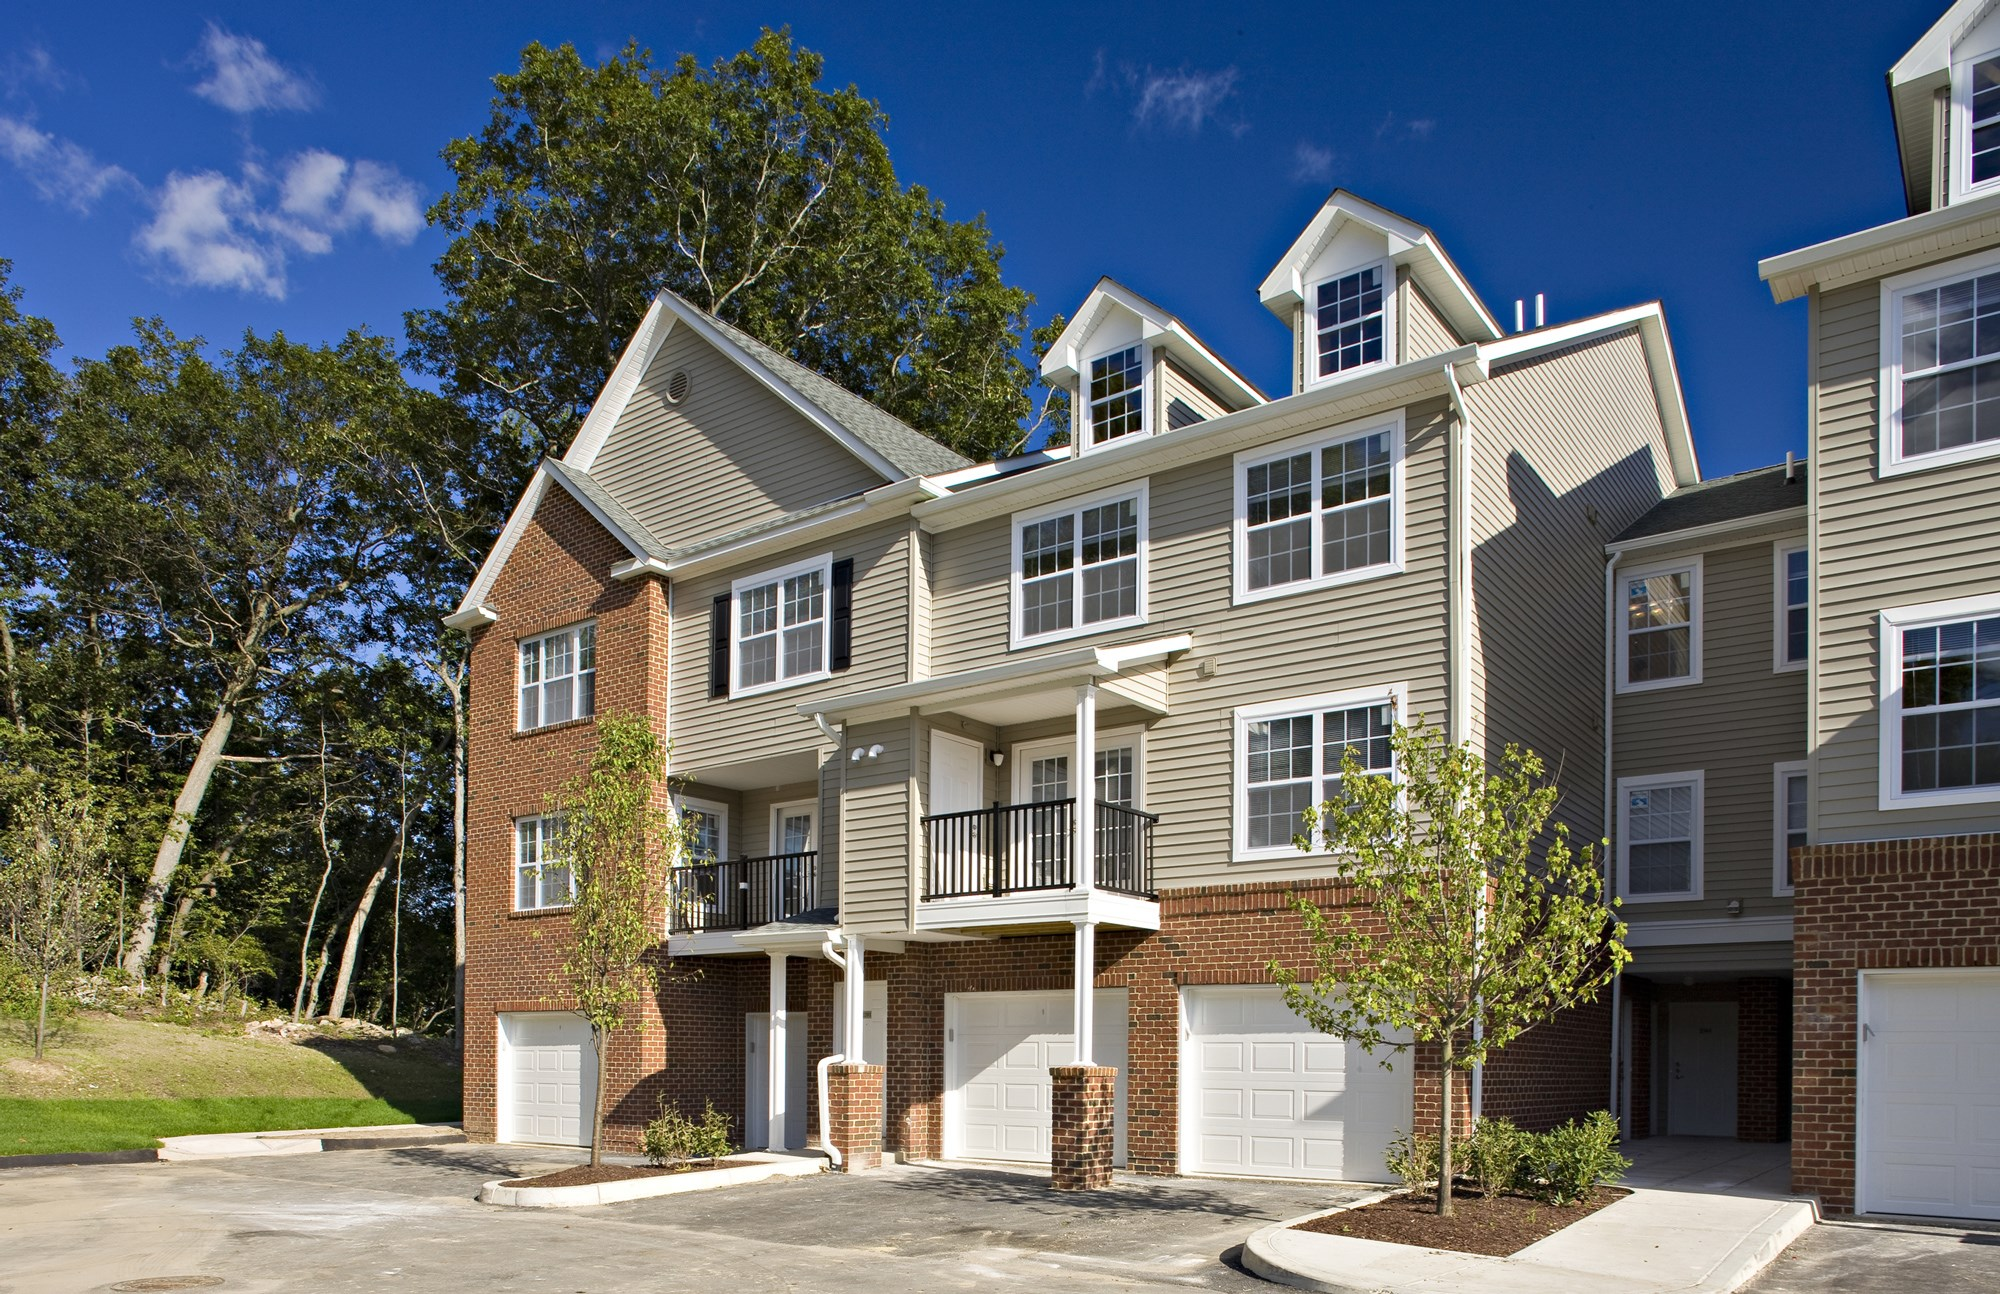 Exterior at Huntington Townhomes in Shelton, CT